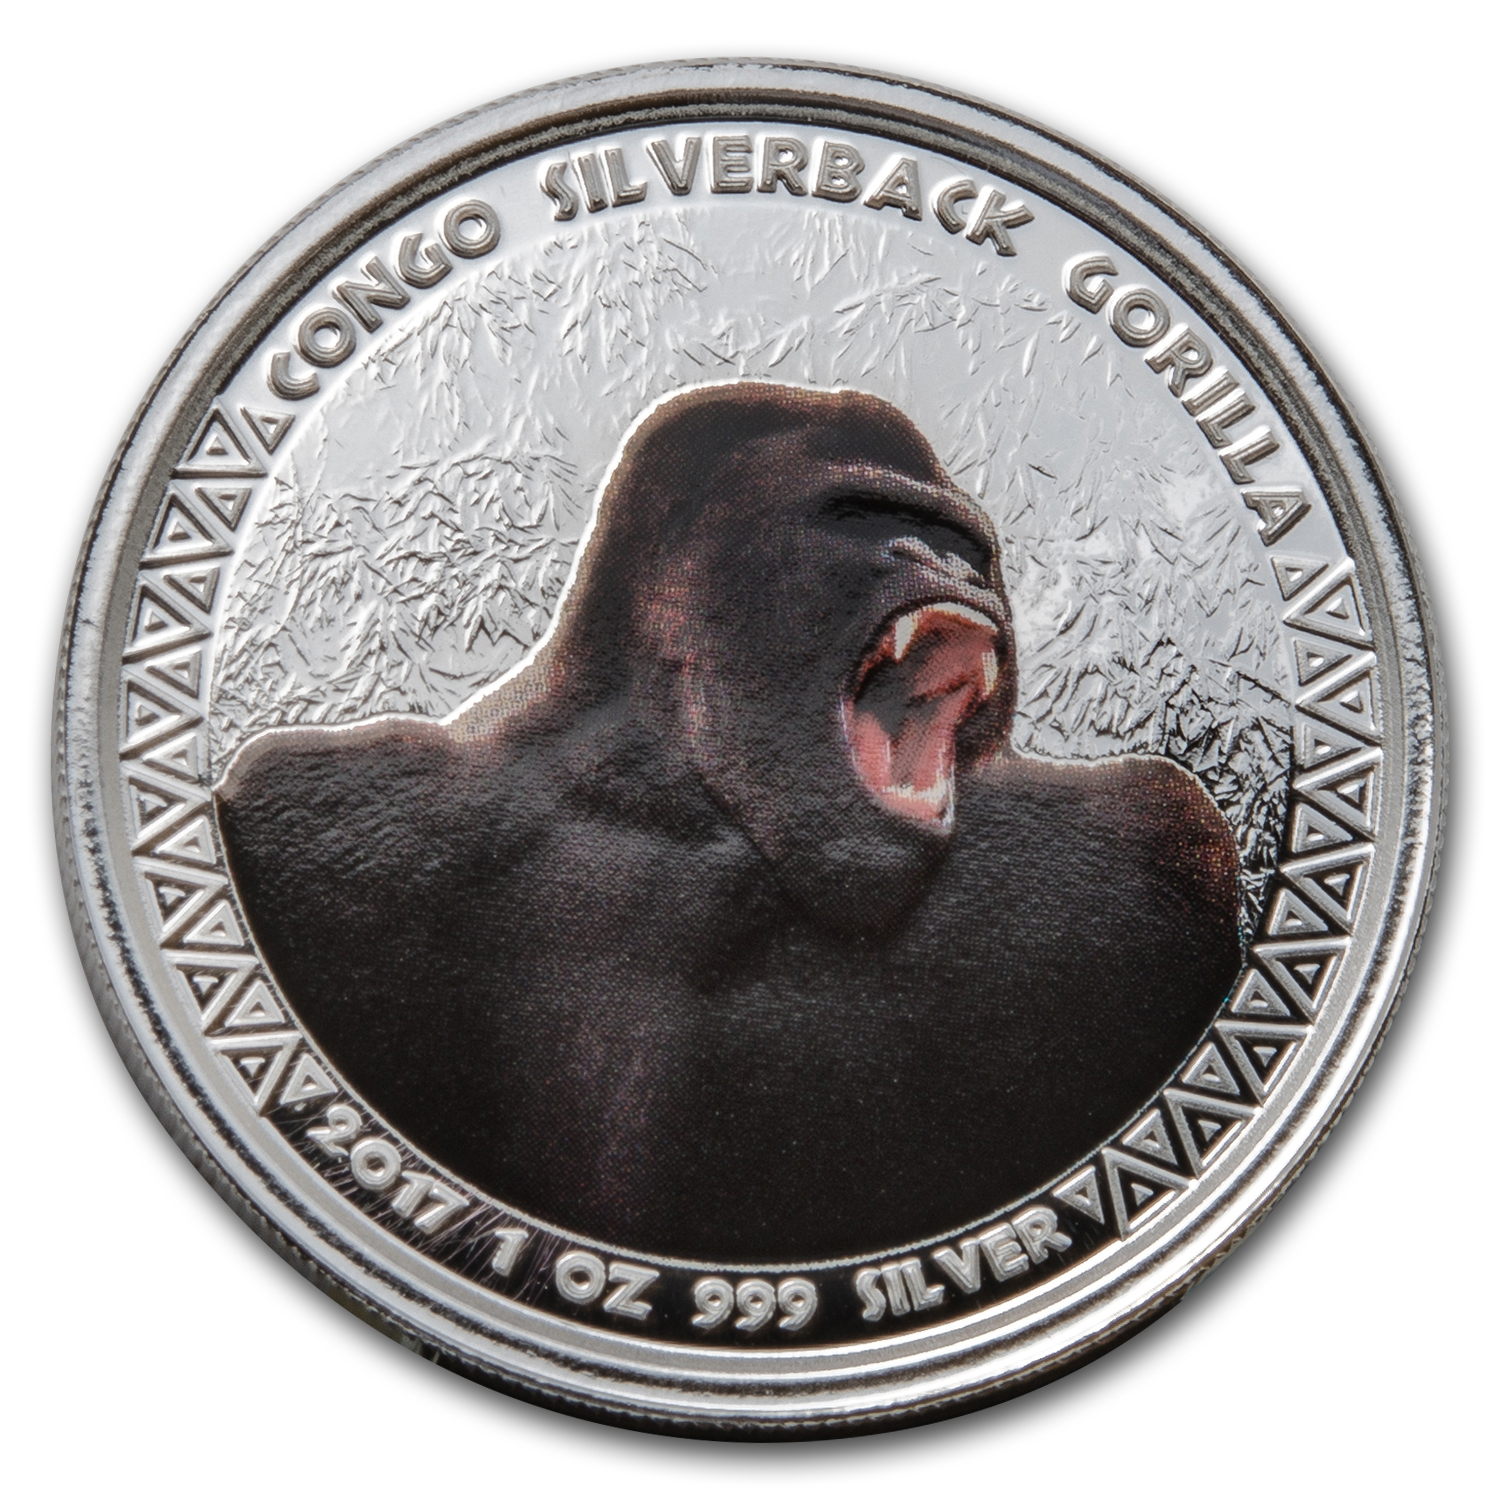 2017 Republic of Congo Silver 1 oz Silverback Gorilla (Colorized)